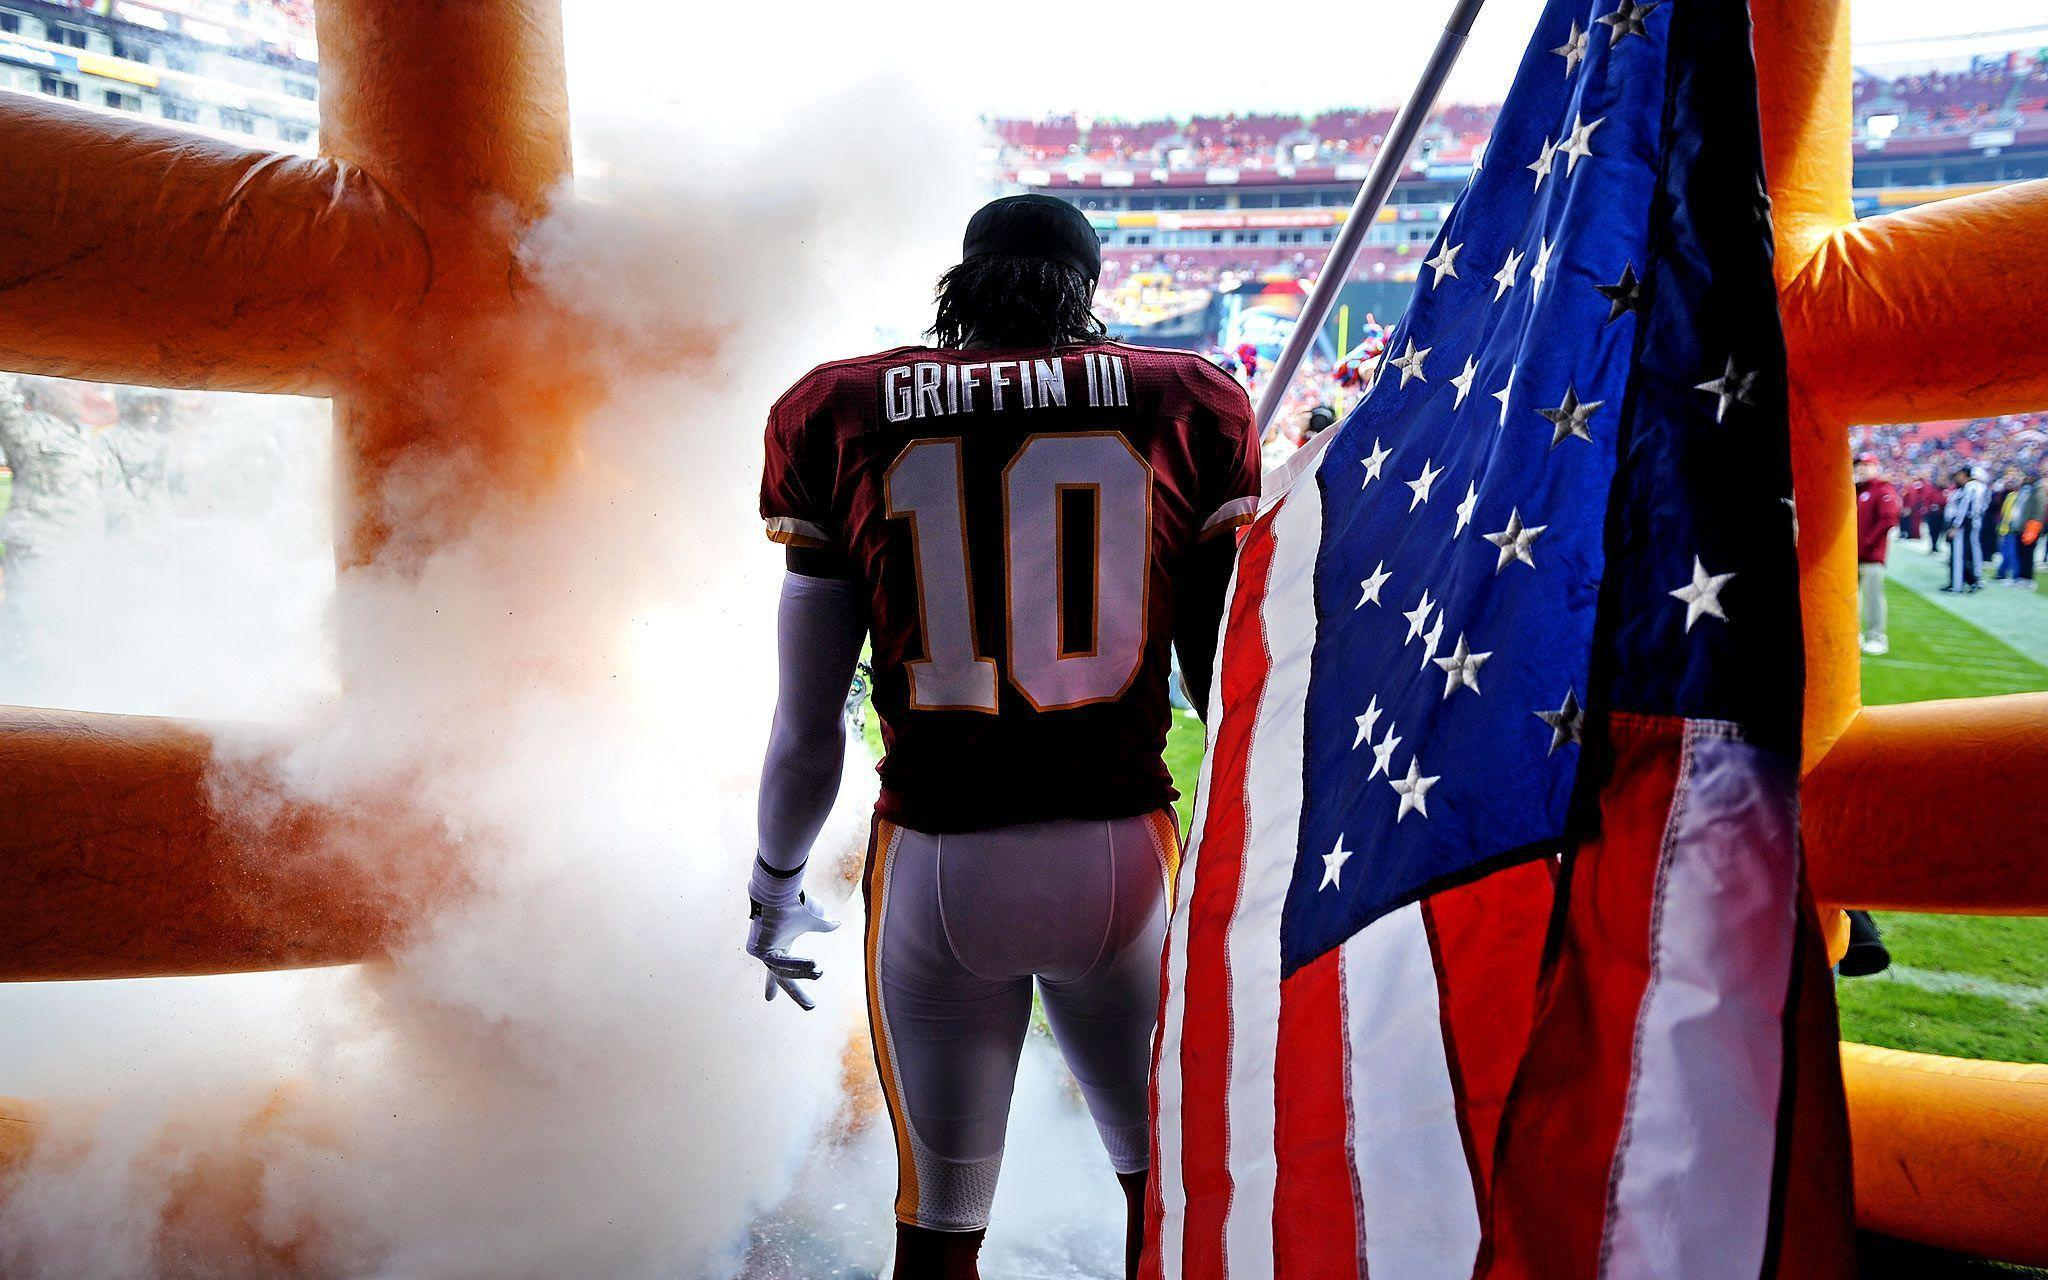 Redskins wallpapers wallpaper cave washington redskins griffin iii free hd wallpaper 2013 desktop voltagebd Choice Image